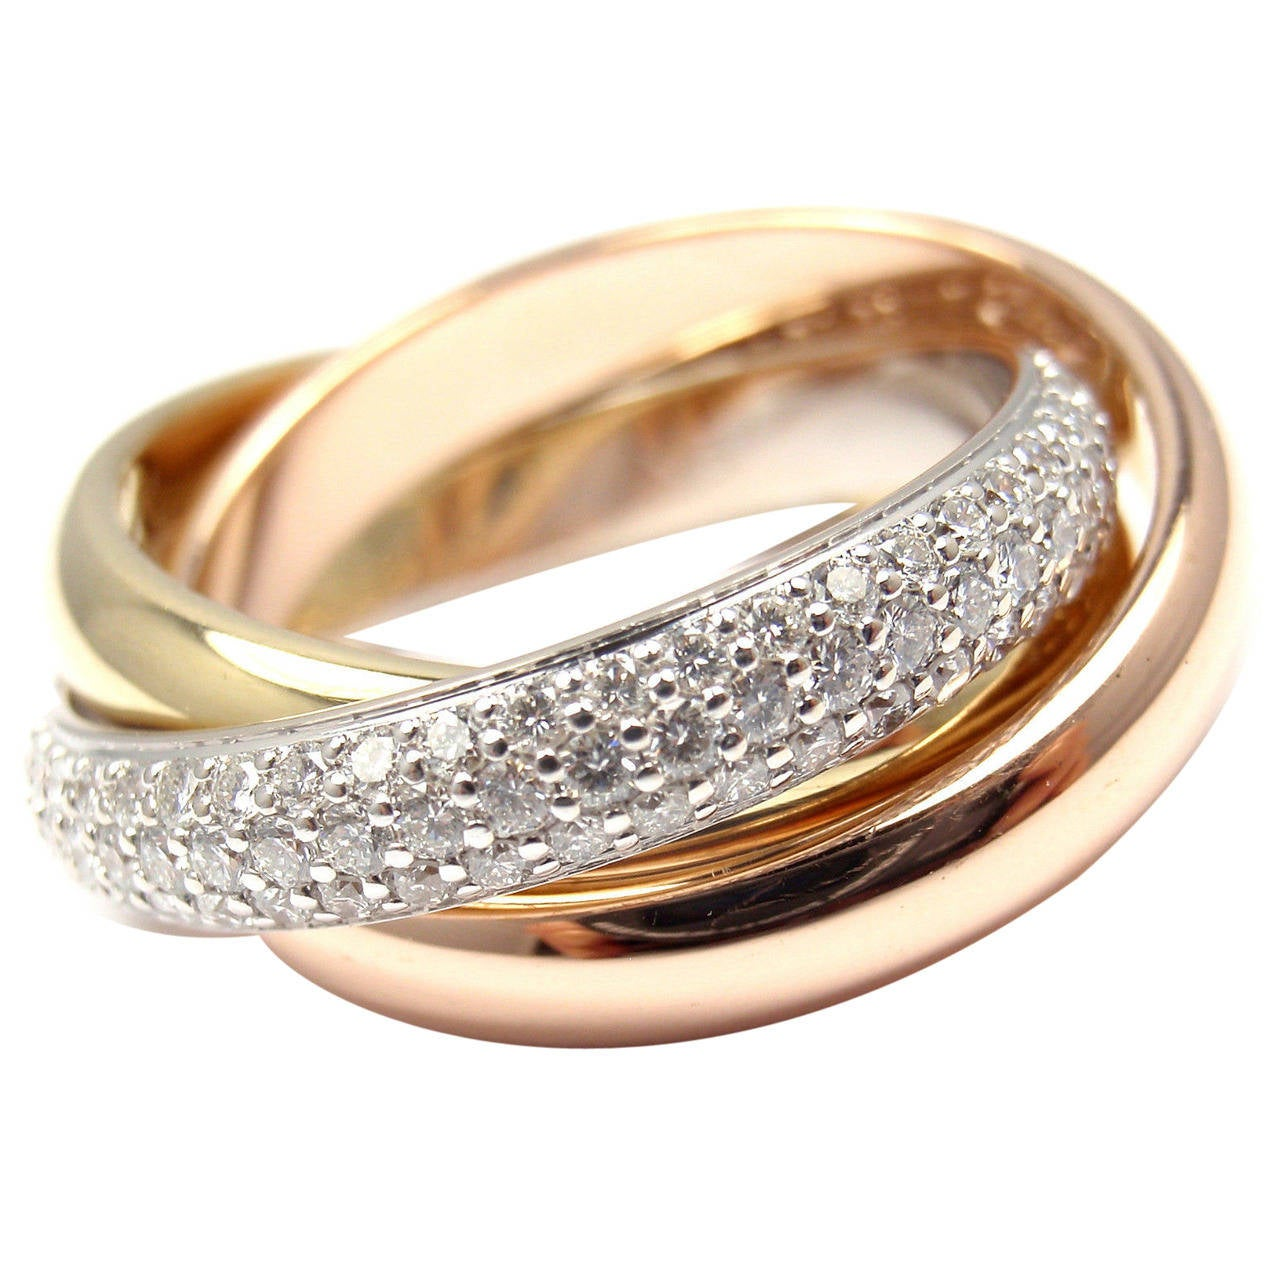 gold solid ring rings fit comfort itm menwomen band yellow ebay wedding